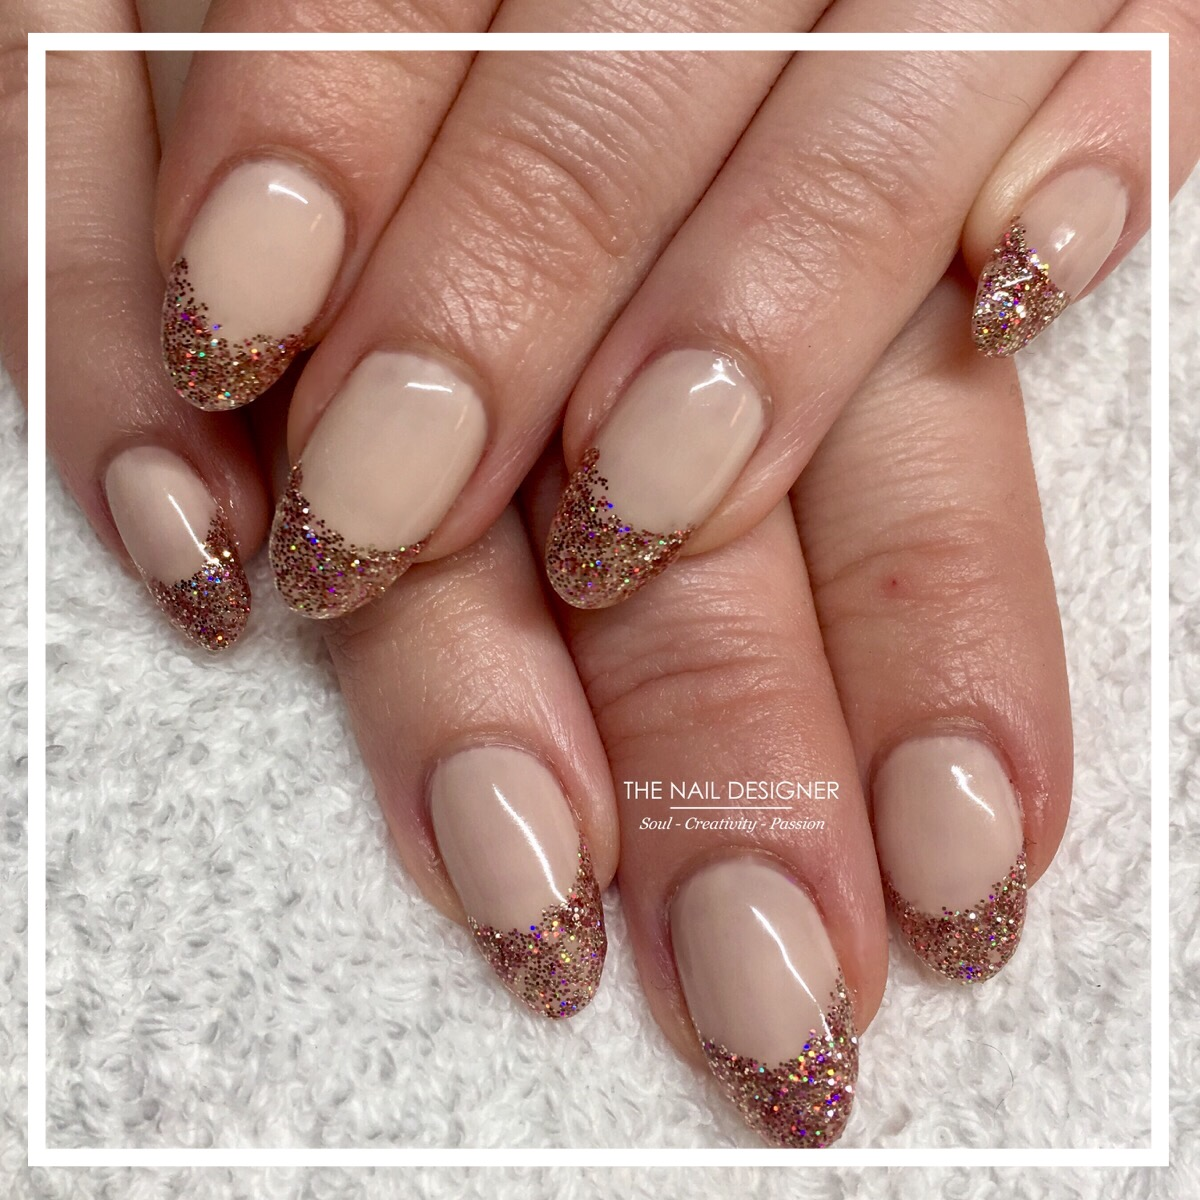 Vitagel Strength Nail Treatments